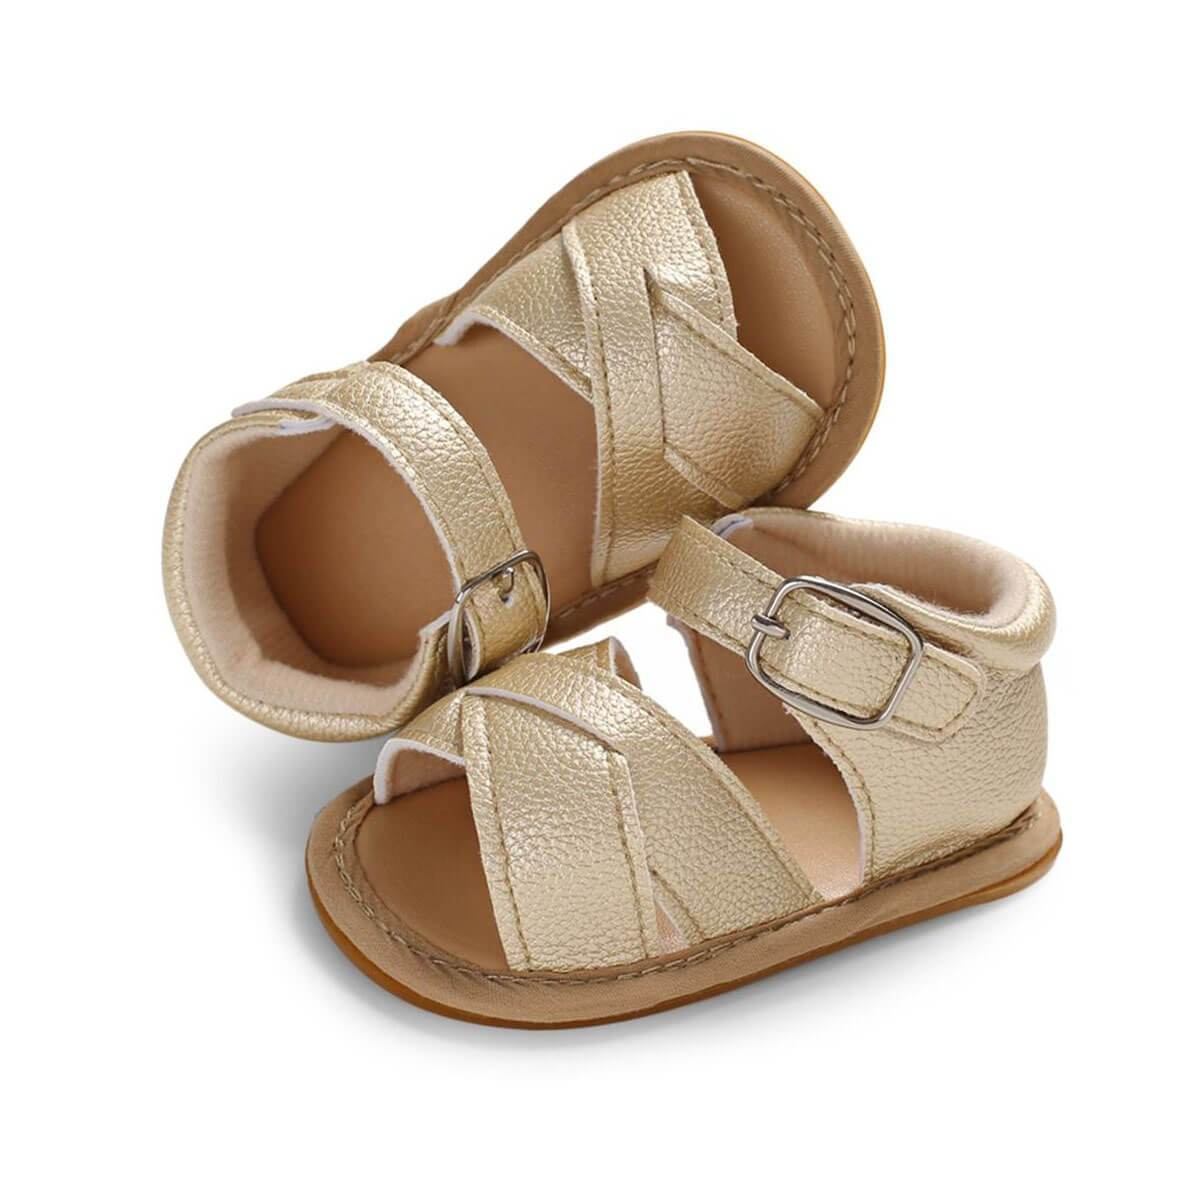 Leather Crossover Sandals - The Trendy Toddlers